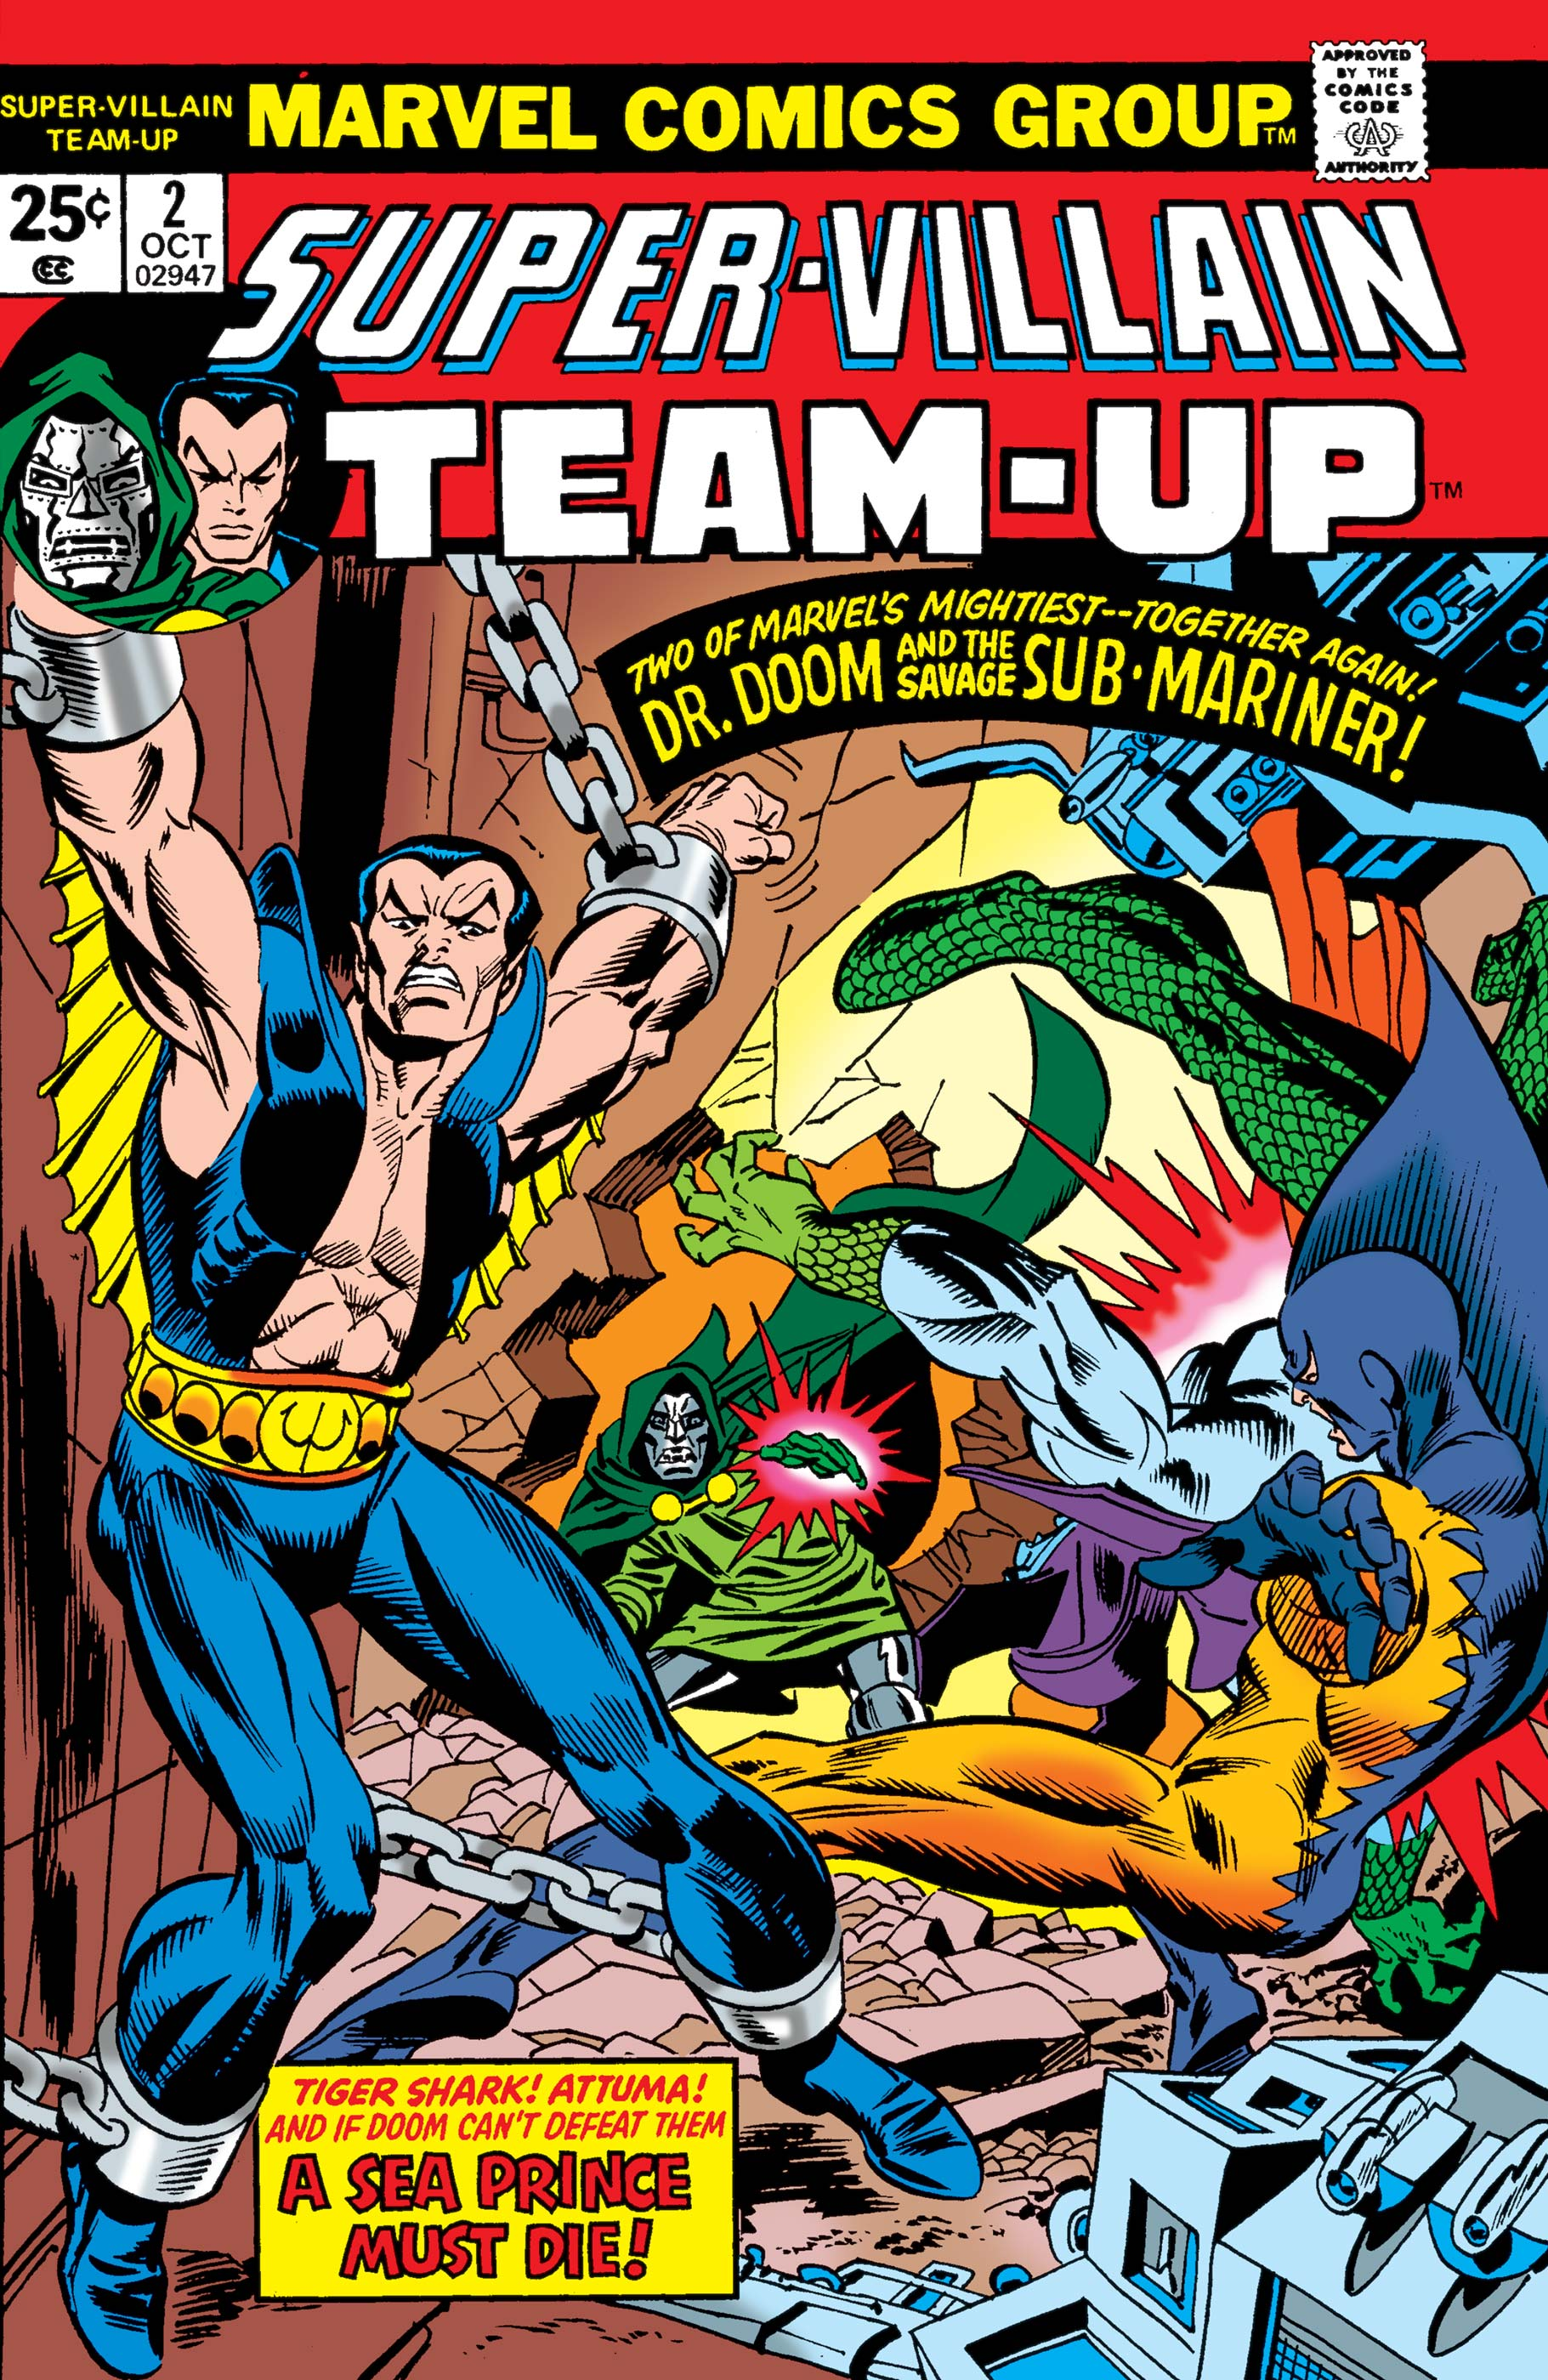 Super-Villain Team-Up (1975) #2